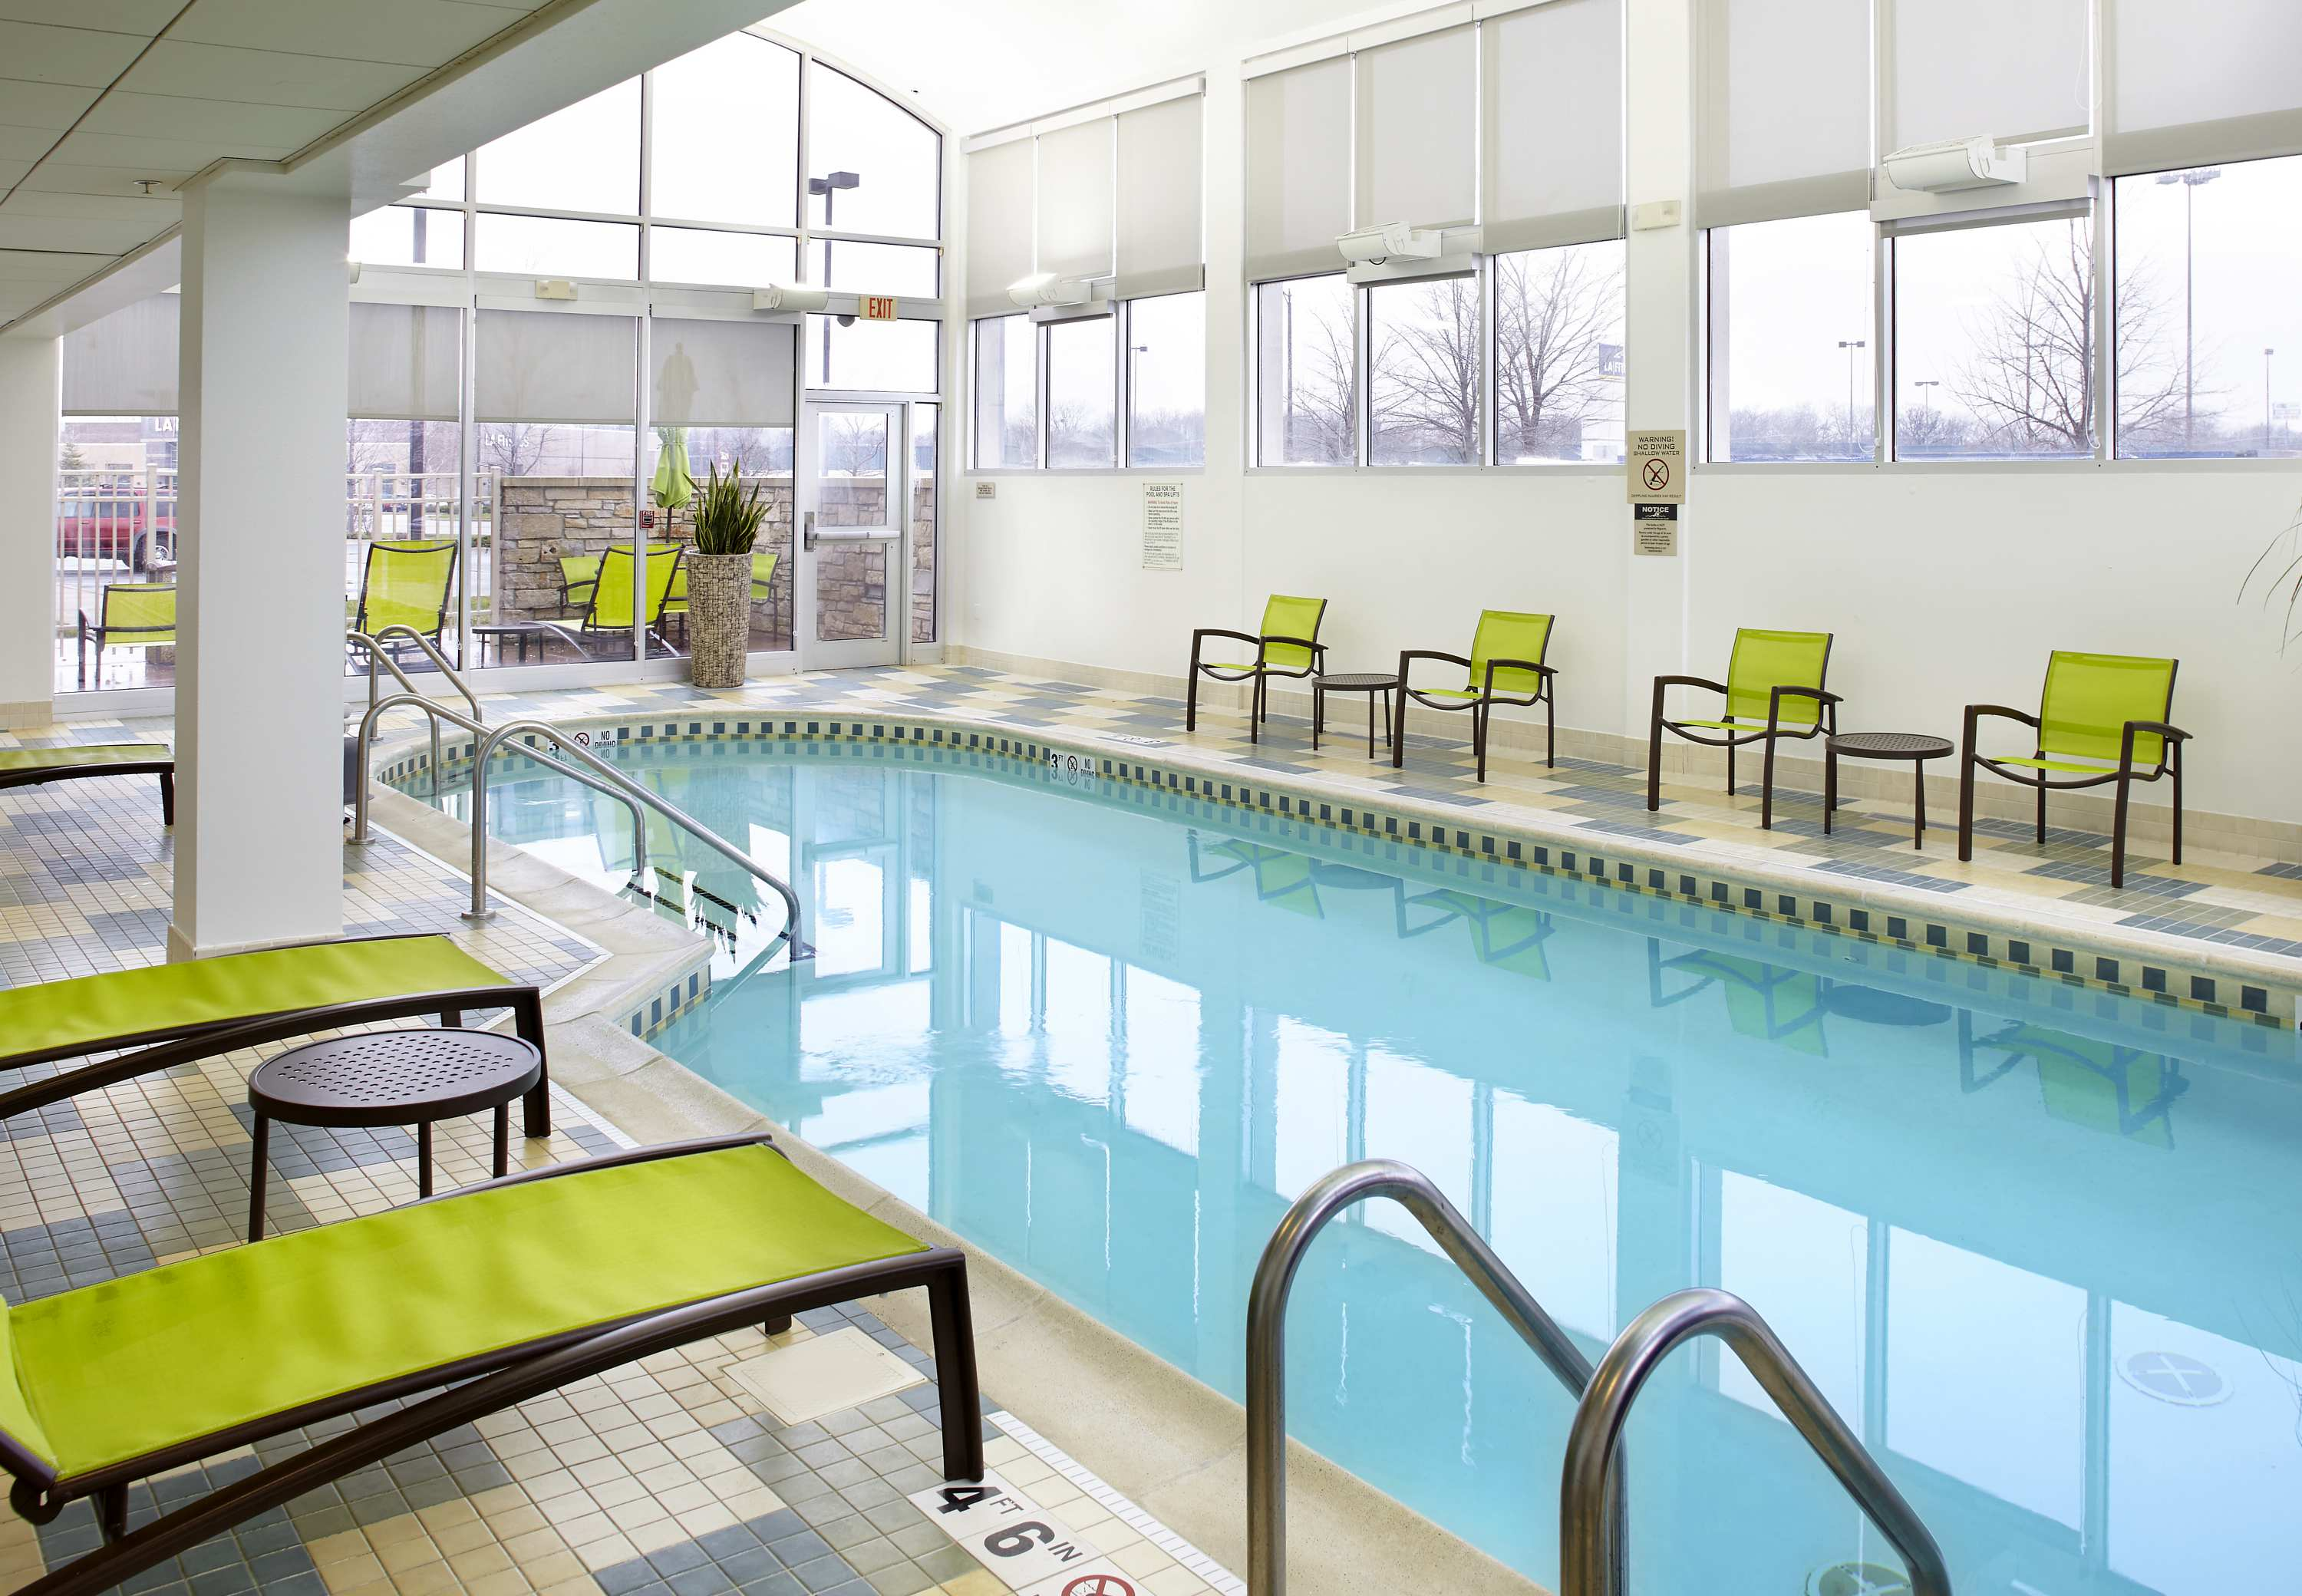 SpringHill Suites by Marriott Chicago Waukegan/Gurnee image 14